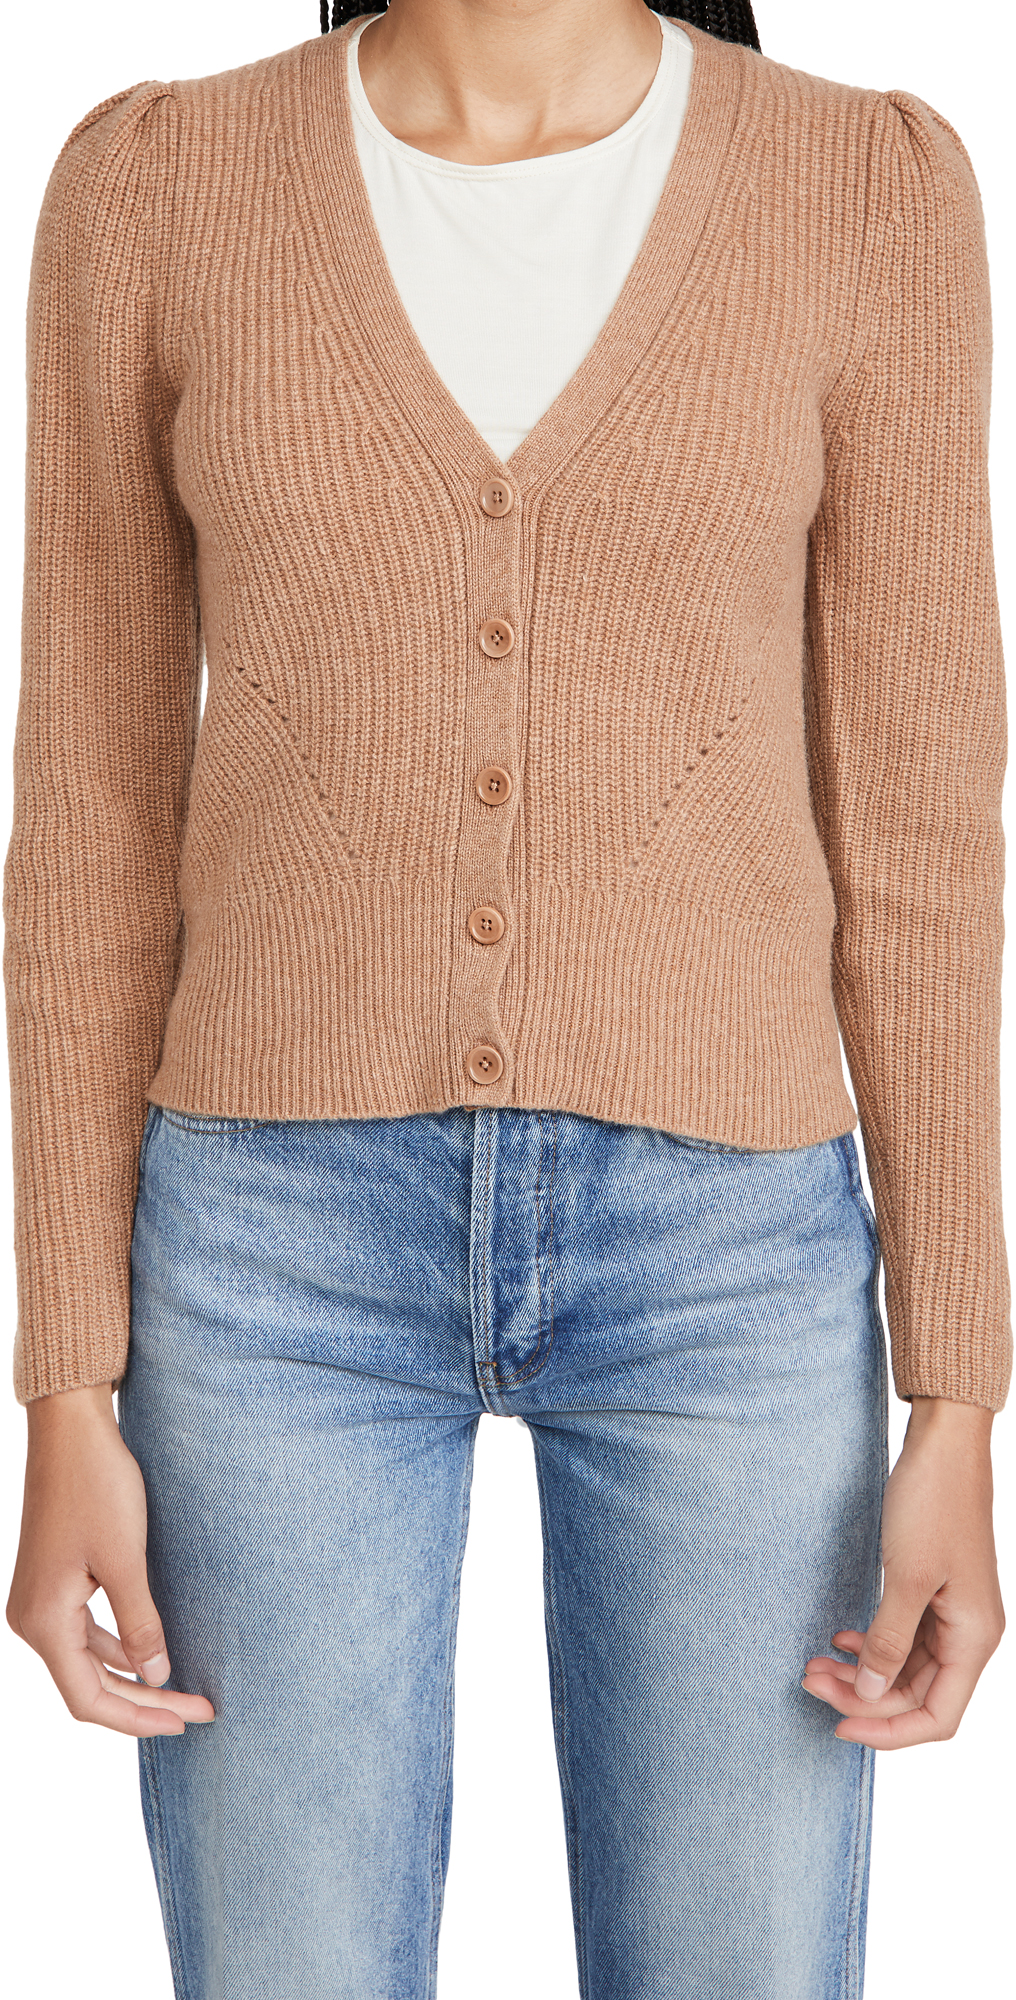 Reformation Fossi Cashmere Cardigan